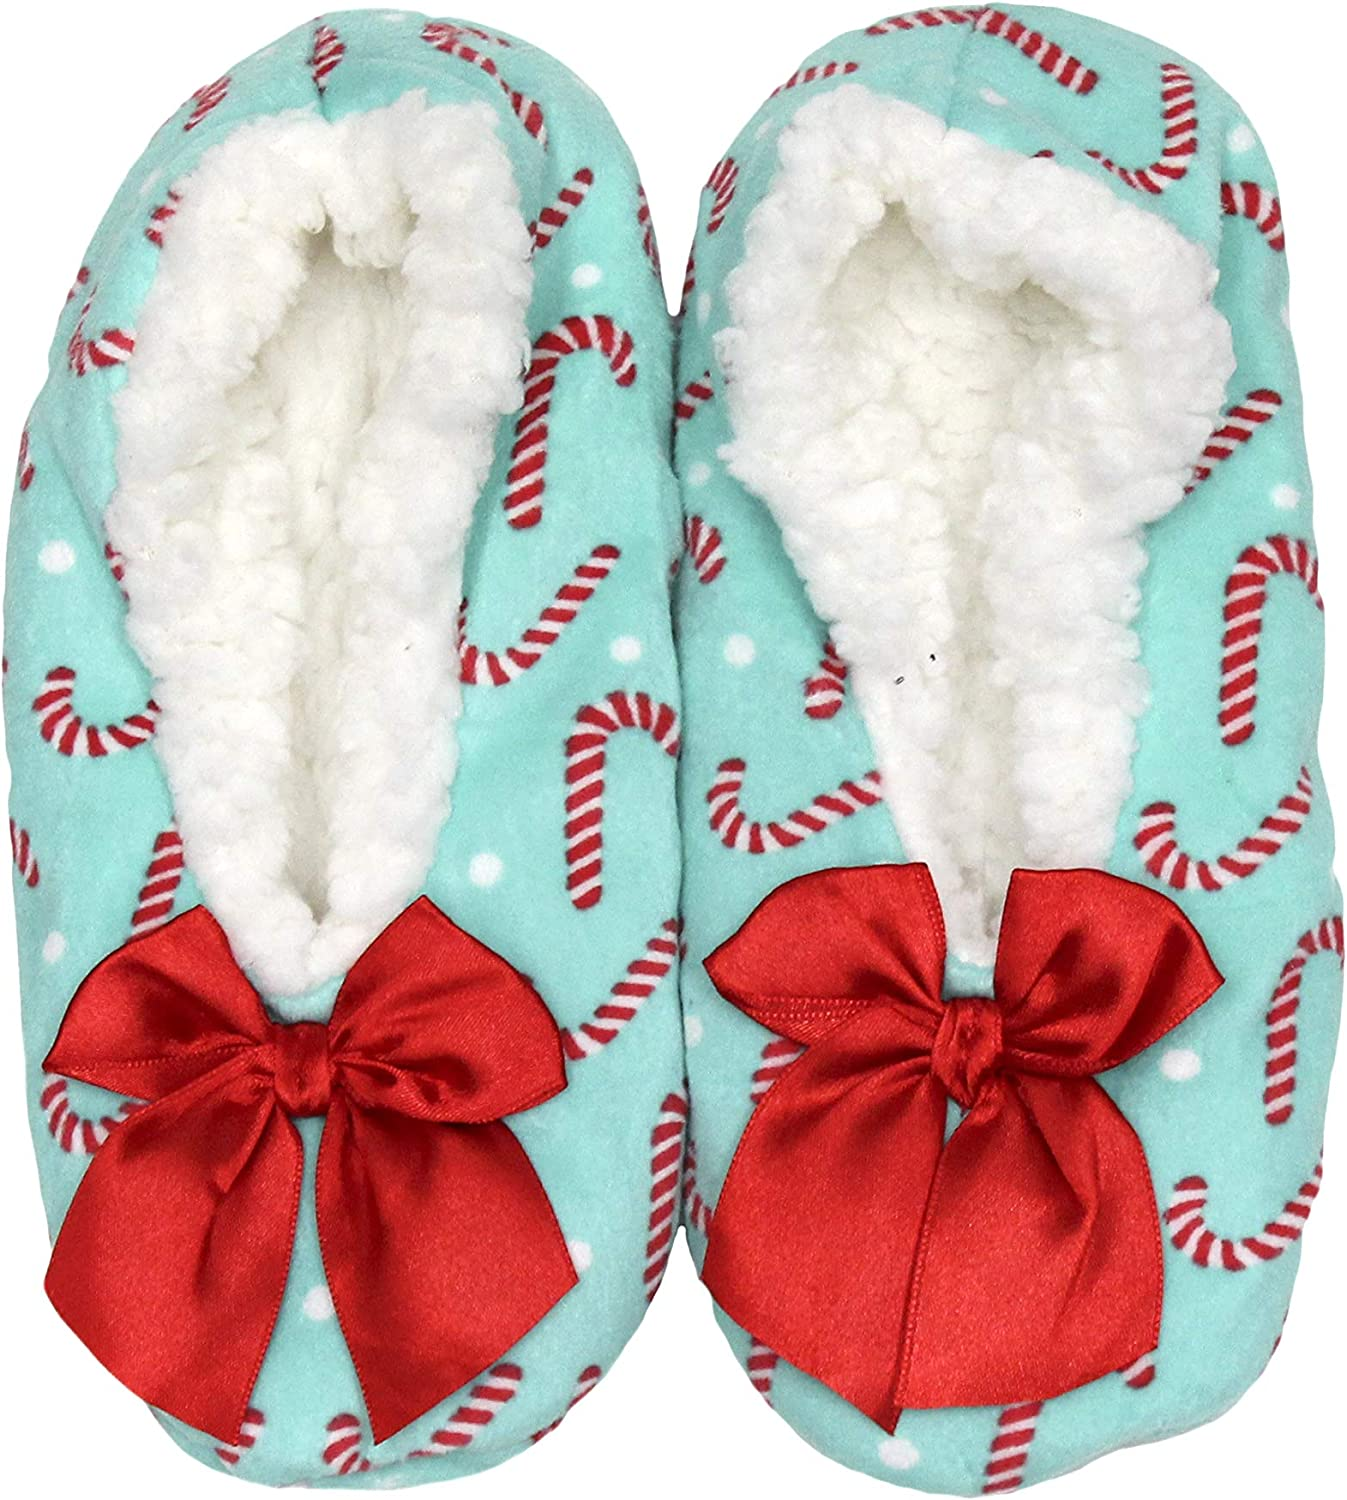 gold Medal Women's Fleece Festive Winter Holiday Slippers with Sherpa Lining and Bow